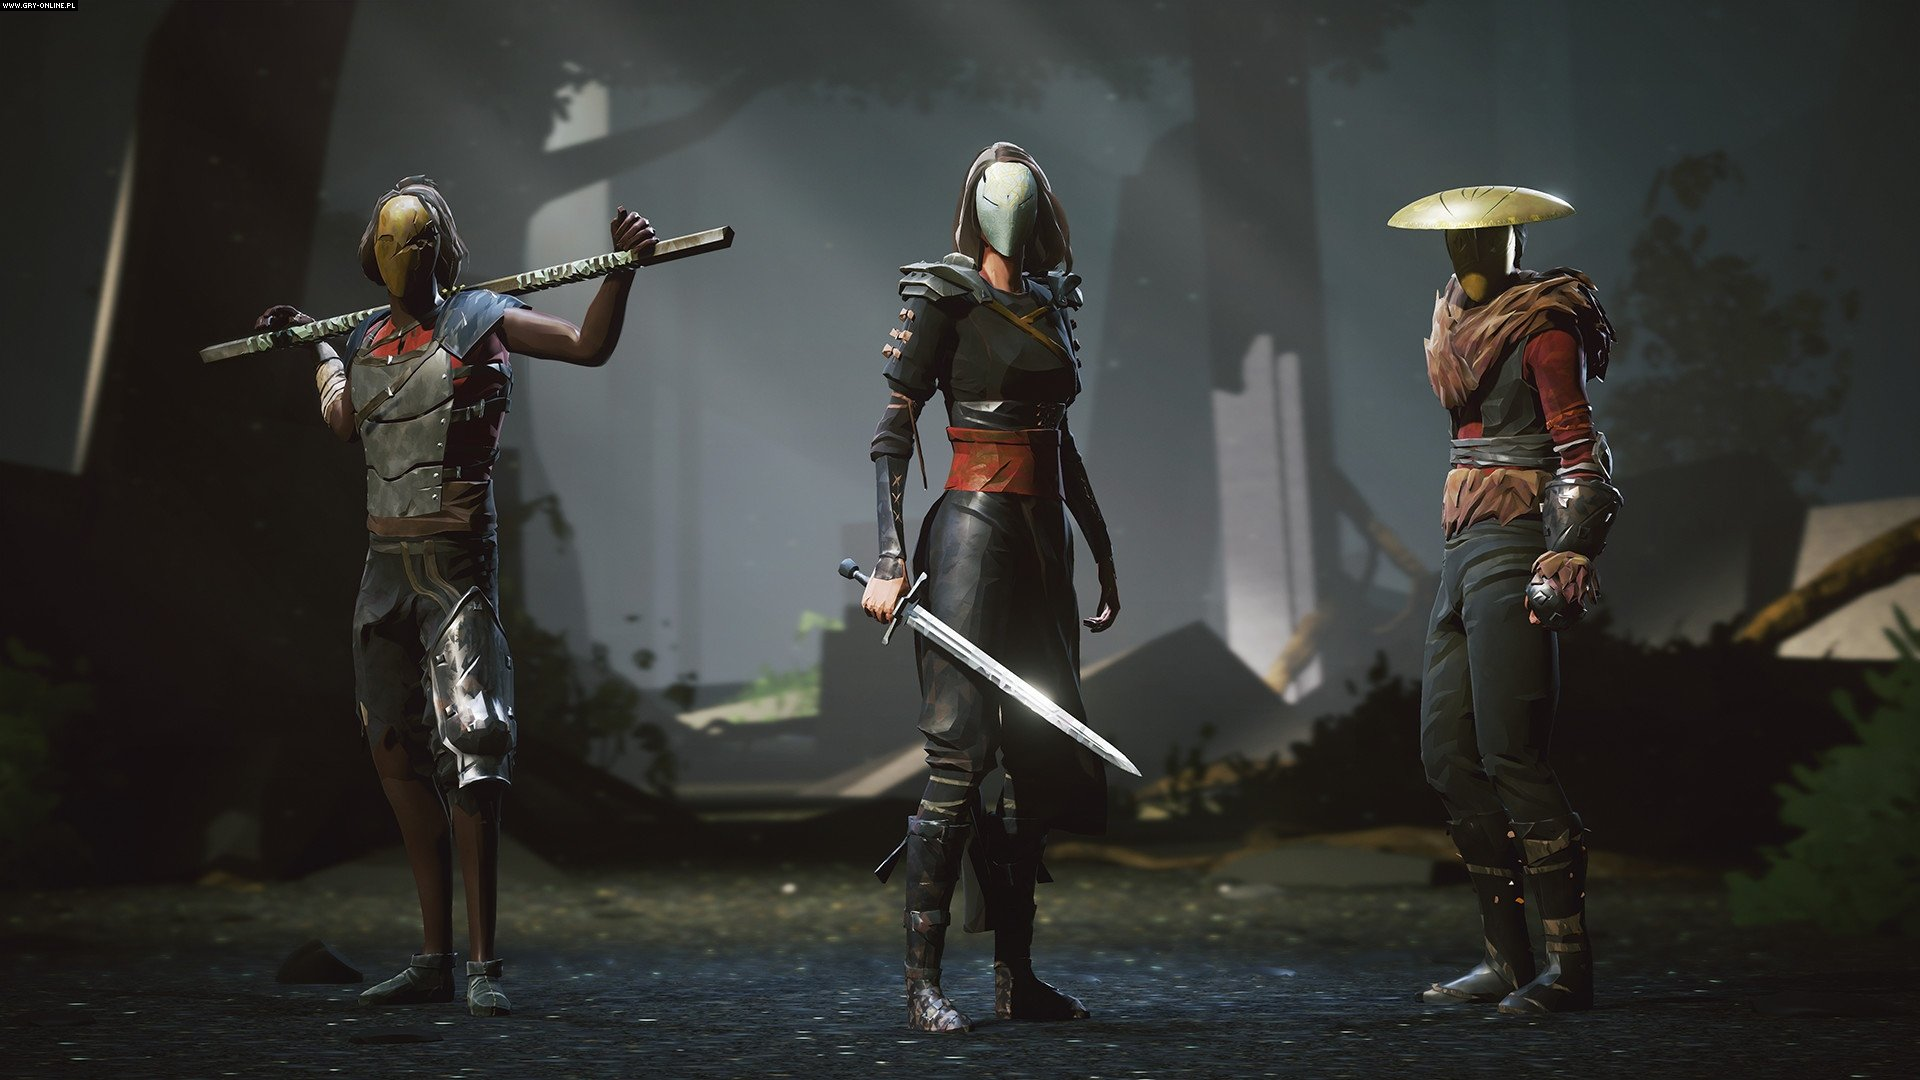 Absolver PC, PS4, XONE Games Image 3/6, Sloclap, Devolver Digital